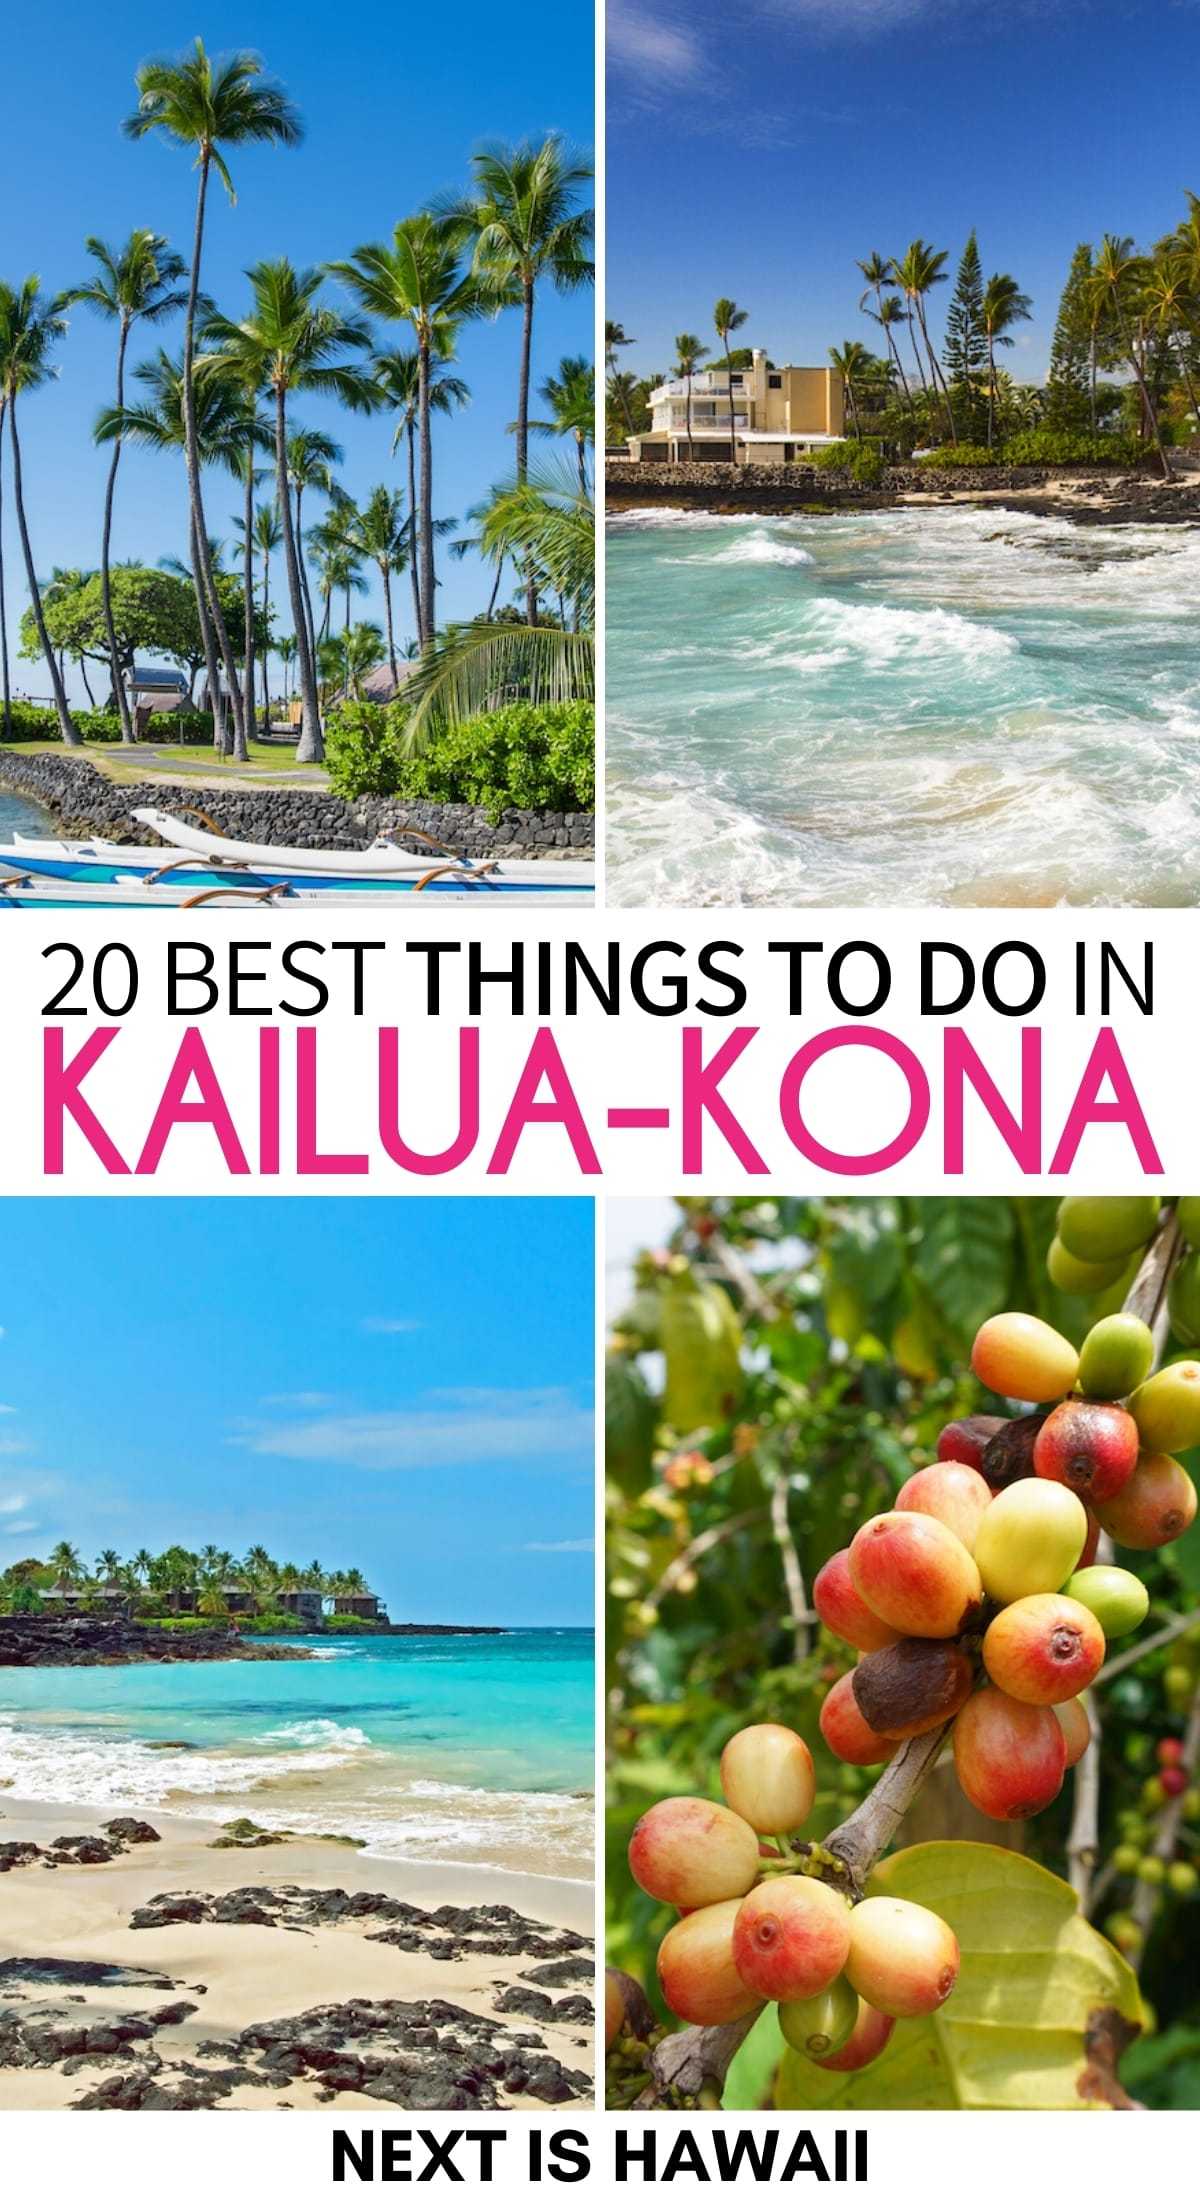 Are you looking for the best things to do in Kona, Hawaii? This guide details the best Kona attractions, places to eat, and much more! Click for more!   Kona things to do   What to do in Kona   Things to do Big Island   Kona landmarks   Kona museums   Kona beaches   Kailua-Kona things to do   Places to visit Big Island   Kona itinerary   Kona cafes   Kona hiking   Kona restaurants